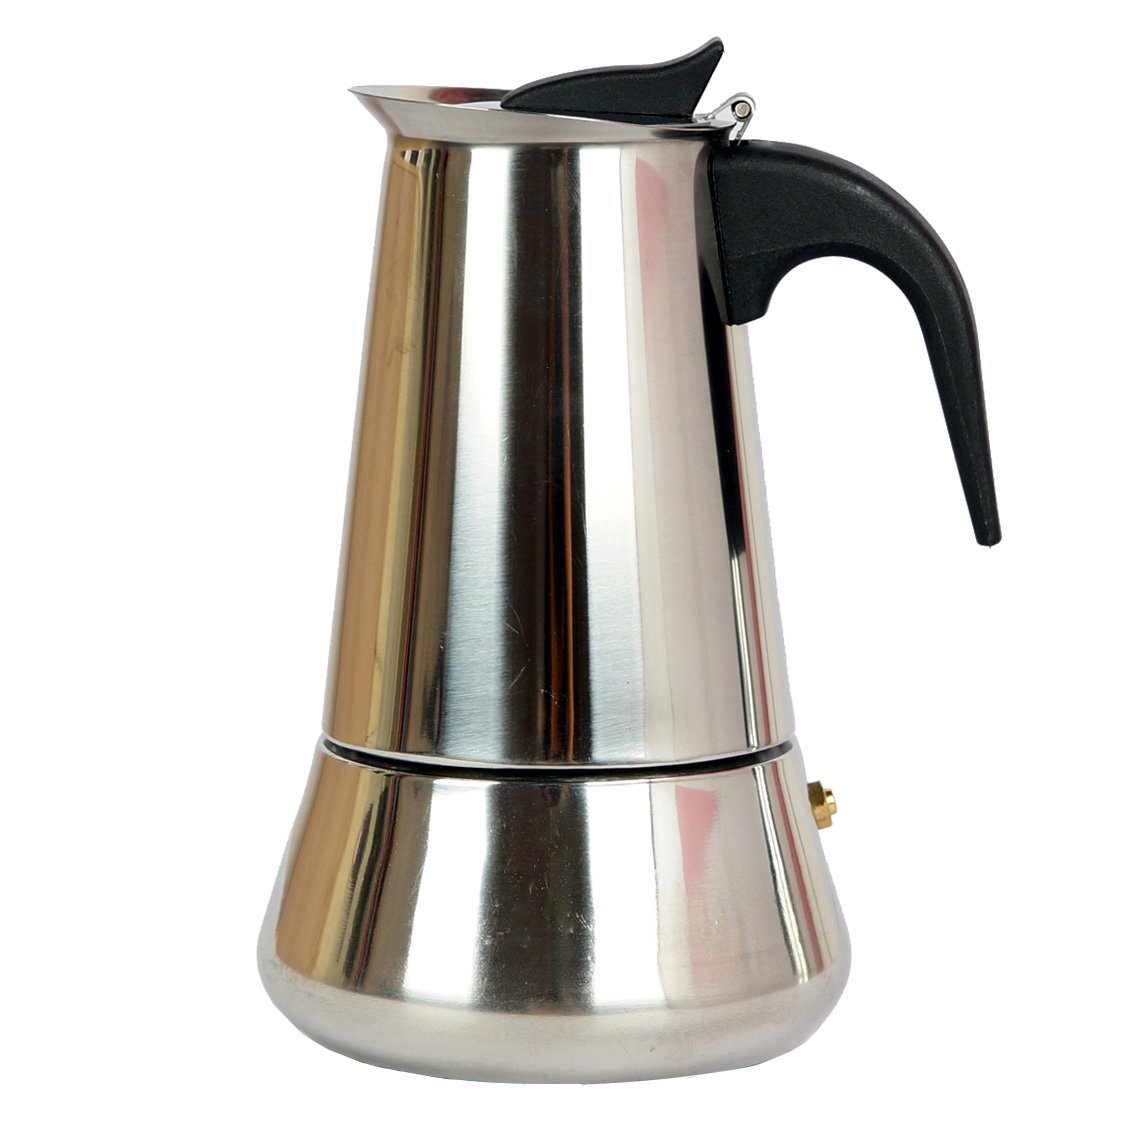 Stainless Steel for Gas 6 Cup Mykumi Moka Pot 6 Cup Espresso Maker Electric and Ceramic Stovetop